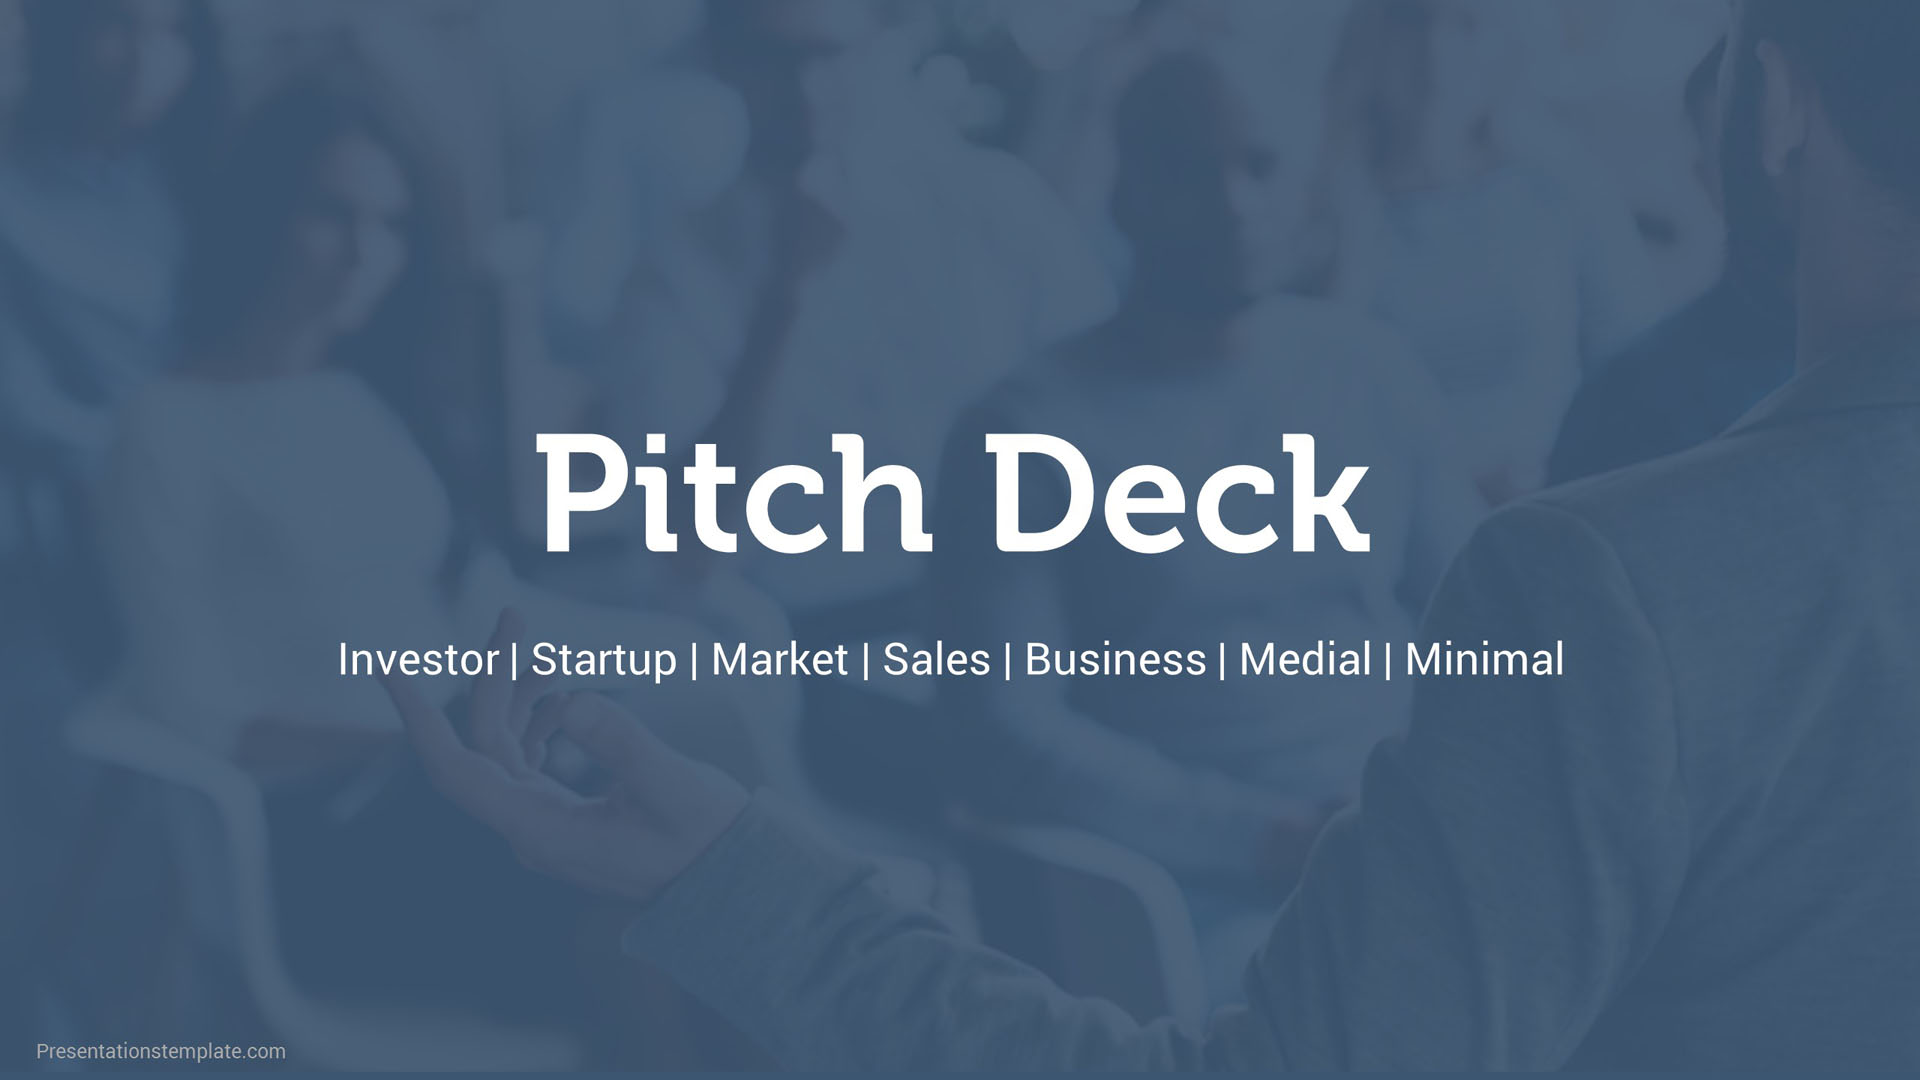 powerpoint pitch deck templates examples